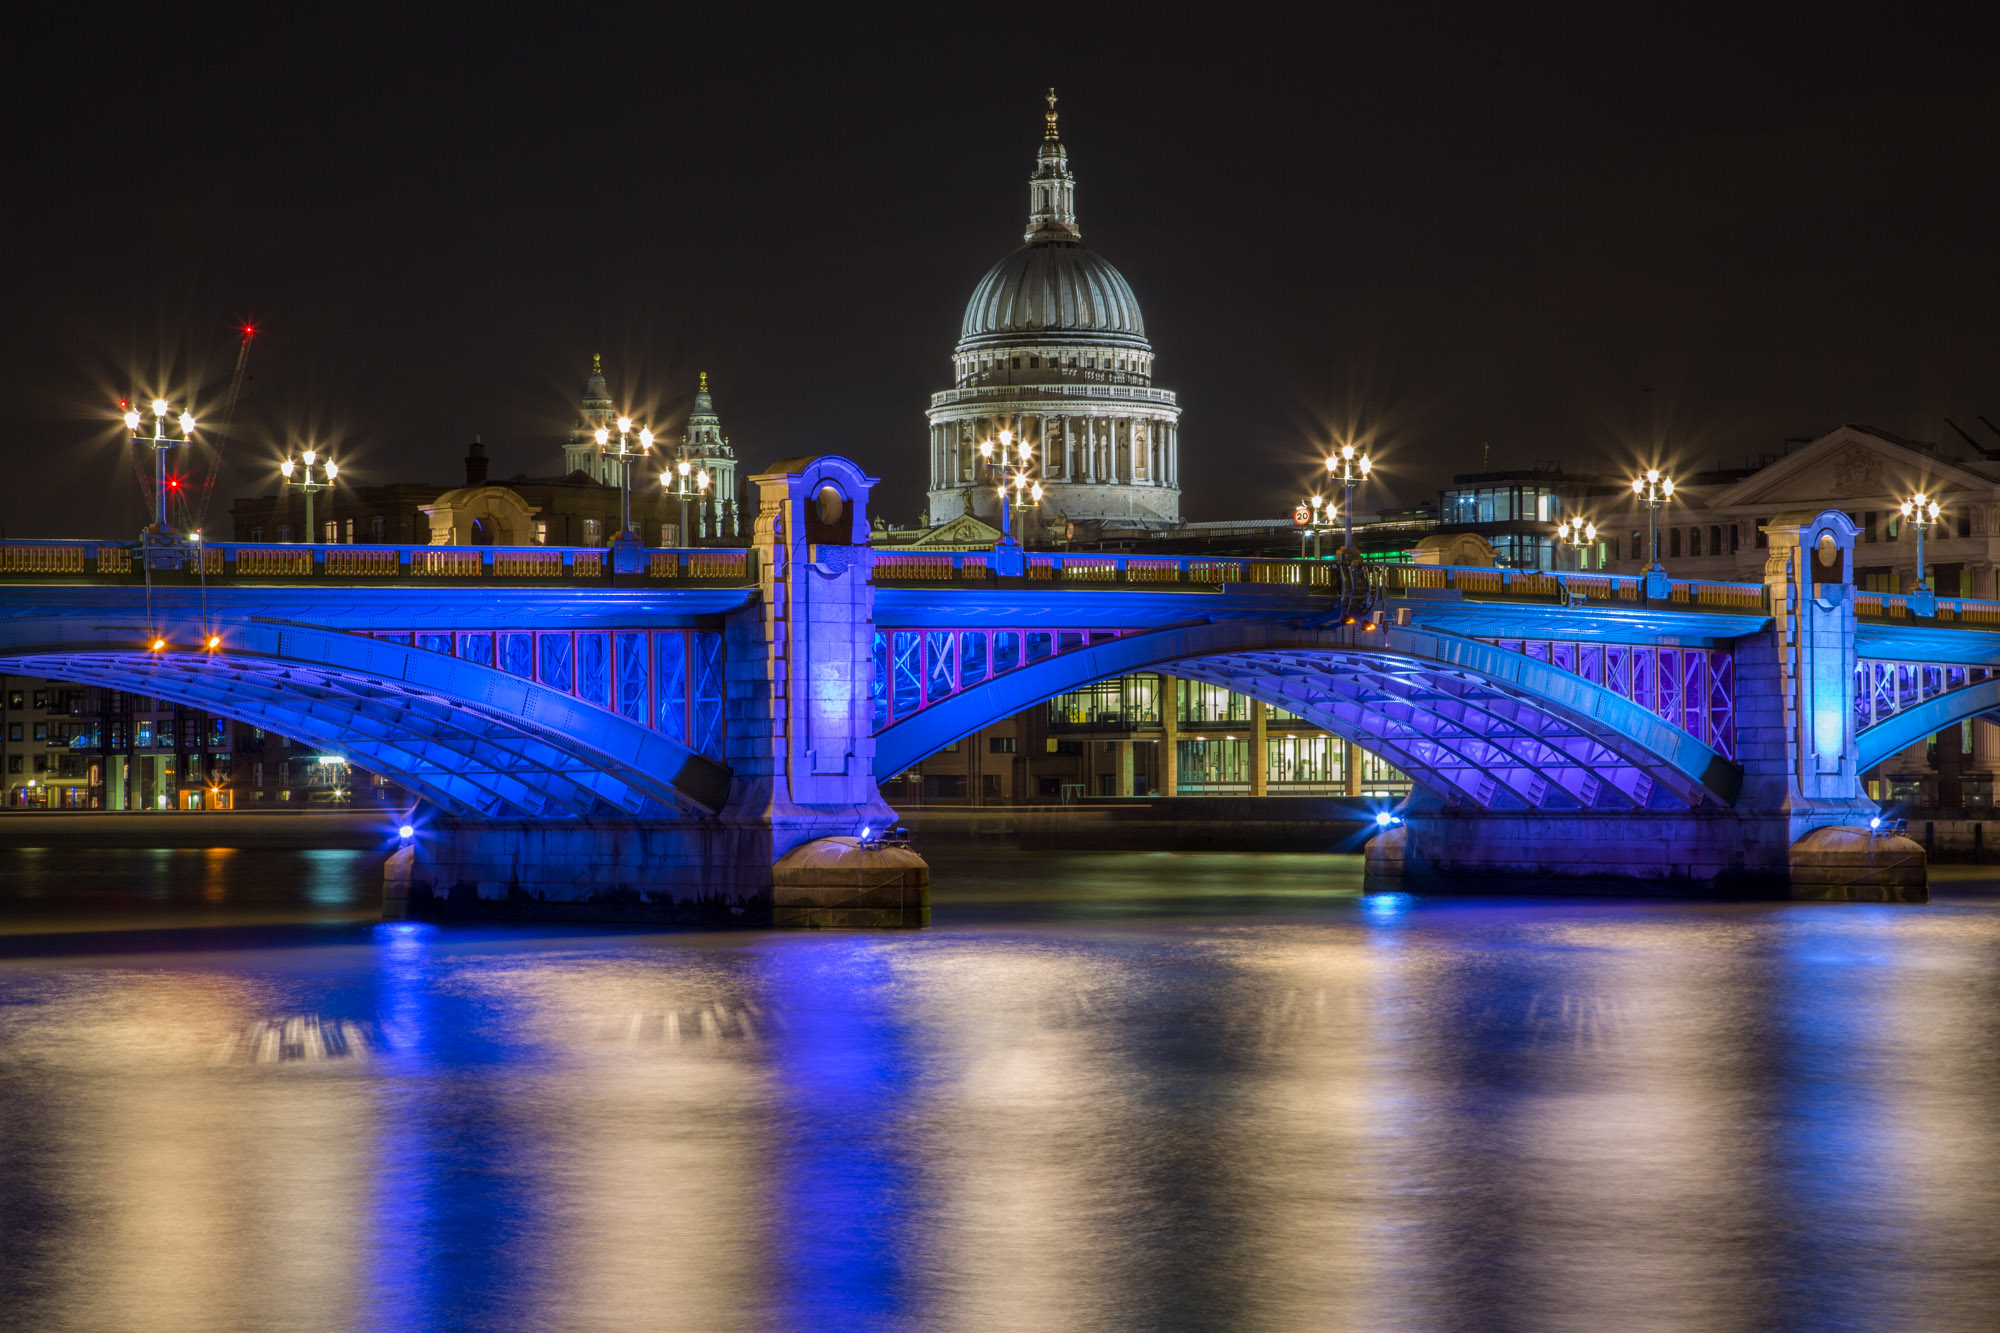 long exposure night photography of the Southwark Bridge and St Pauls Cathedral along the River Thames in London UK